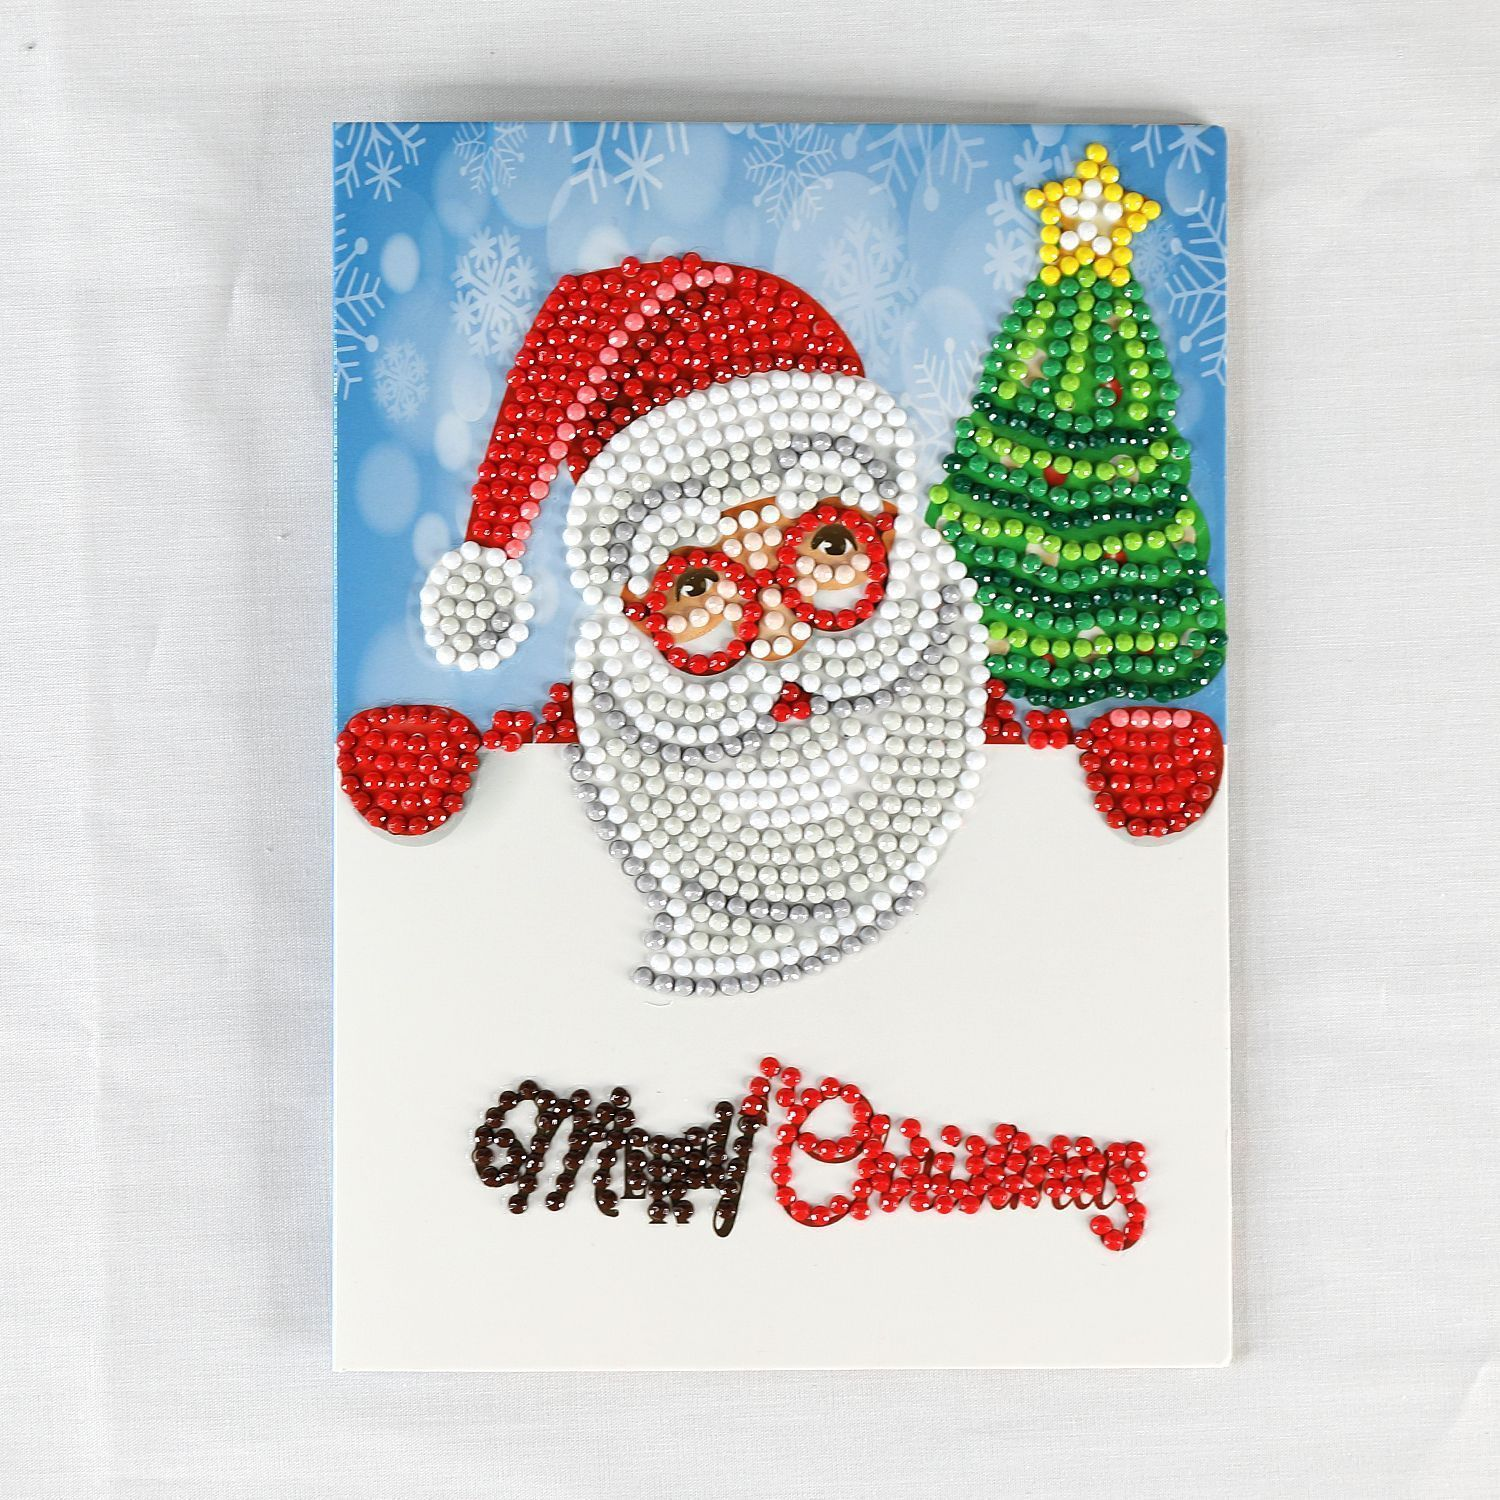 Christmas Pre Promotion🎅Diamond Painting Christmas Card-50% OFF TODAY!